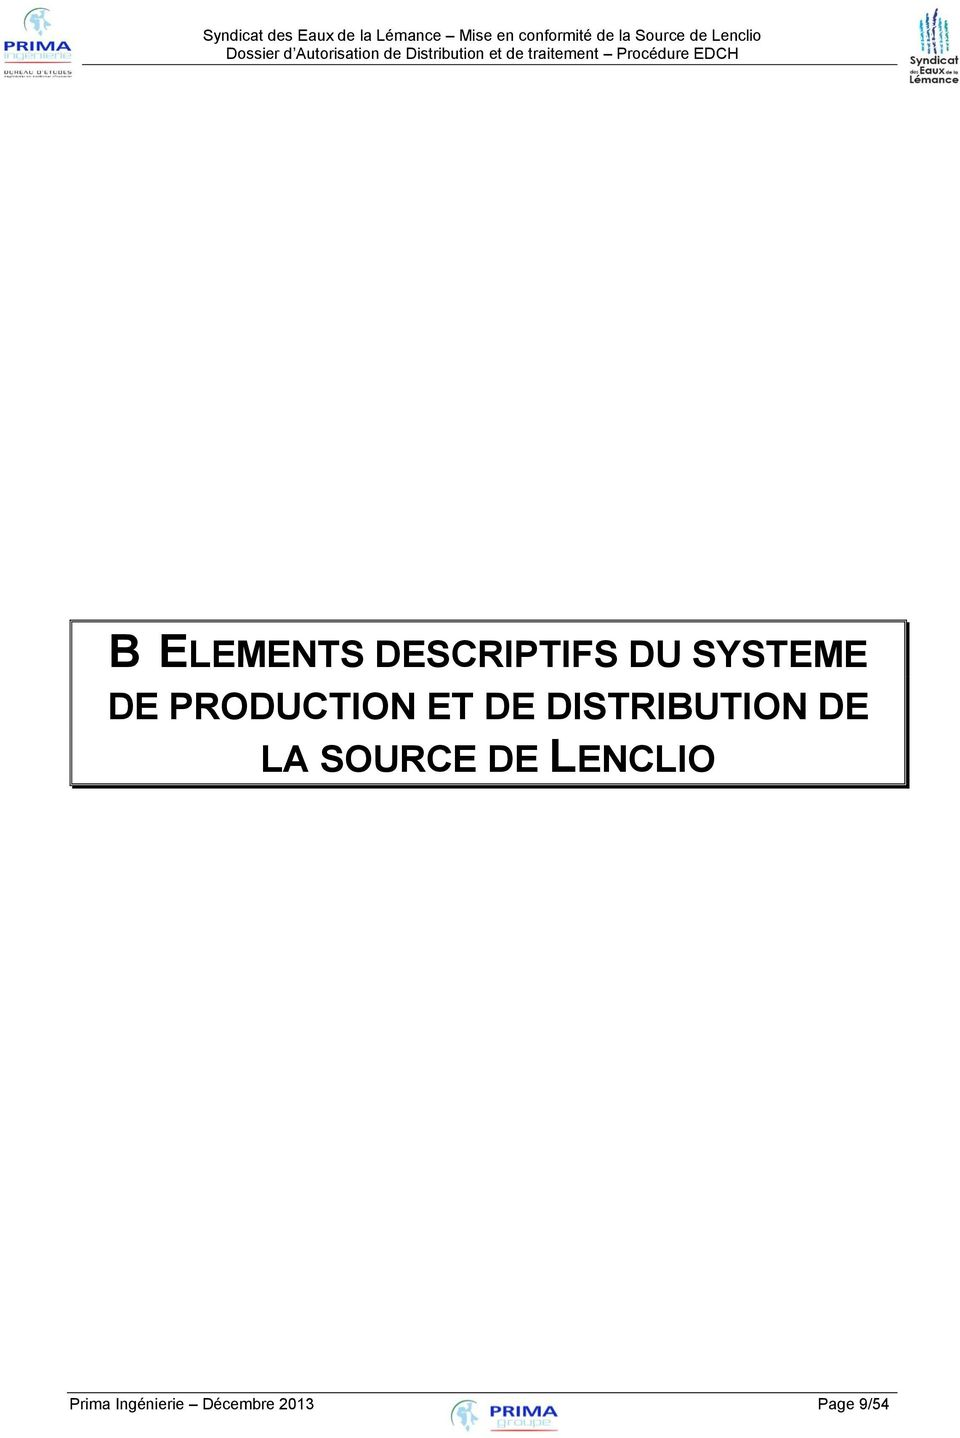 DISTRIBUTION DE LA SOURCE DE